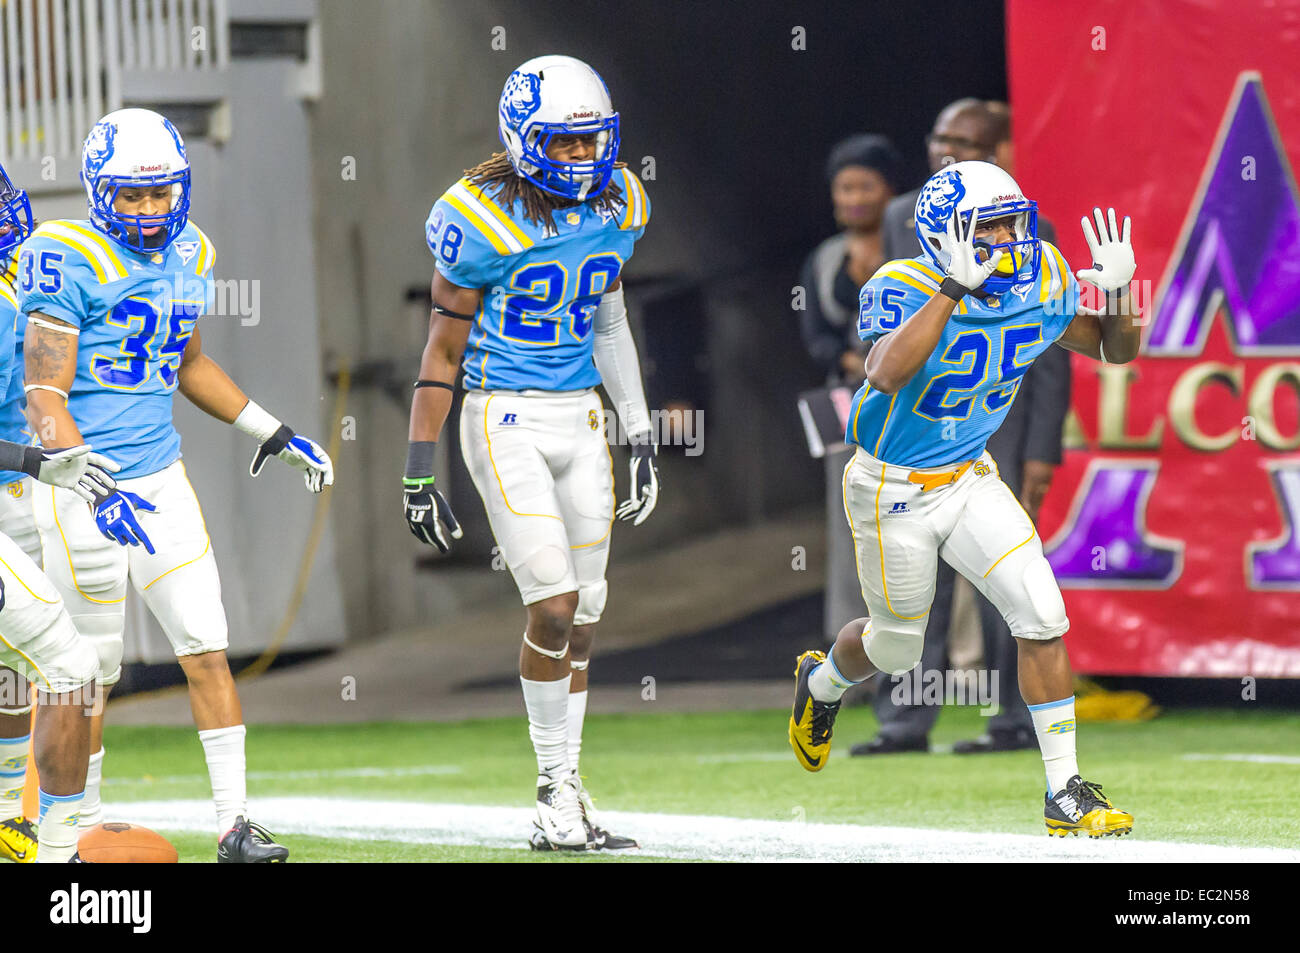 Southern University Jaguars Wide Receiver